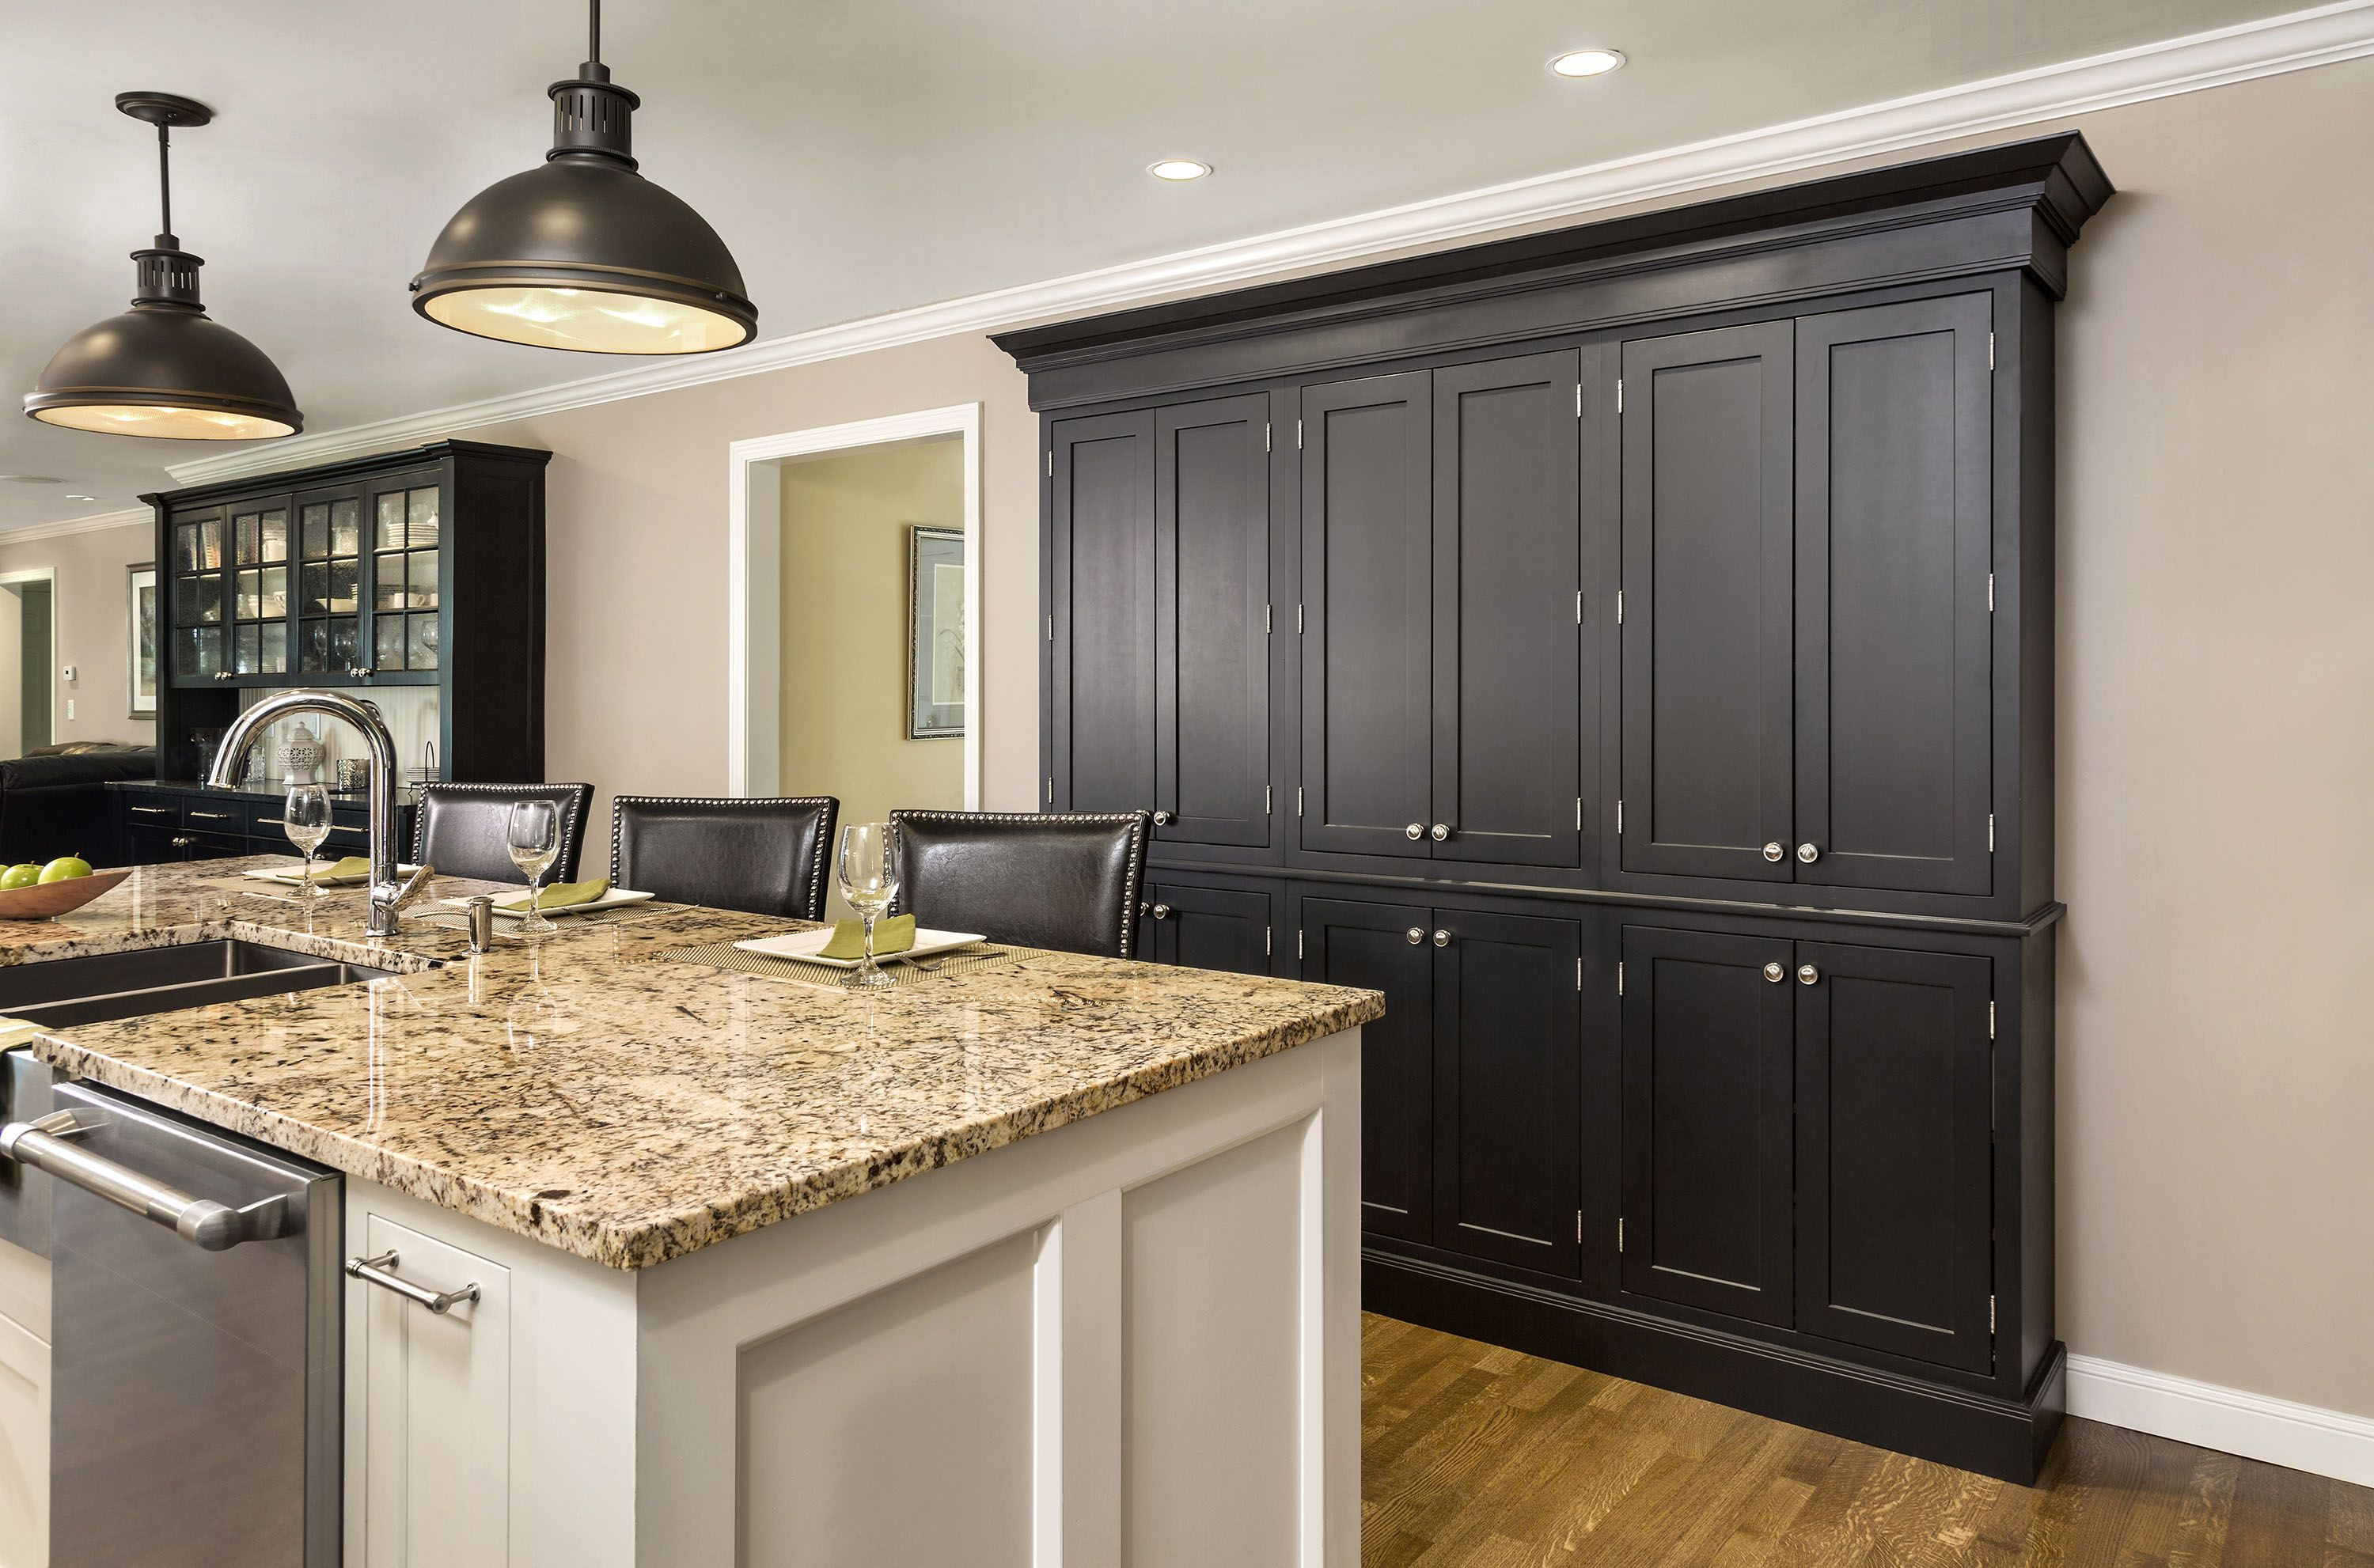 Classic Black And White Kitchen Cabinets With Tall Pantry And Expansive Island Shown In Cliqstudios Austin Inset Do Built In Pantry Pantry Wall Shallow Pantry